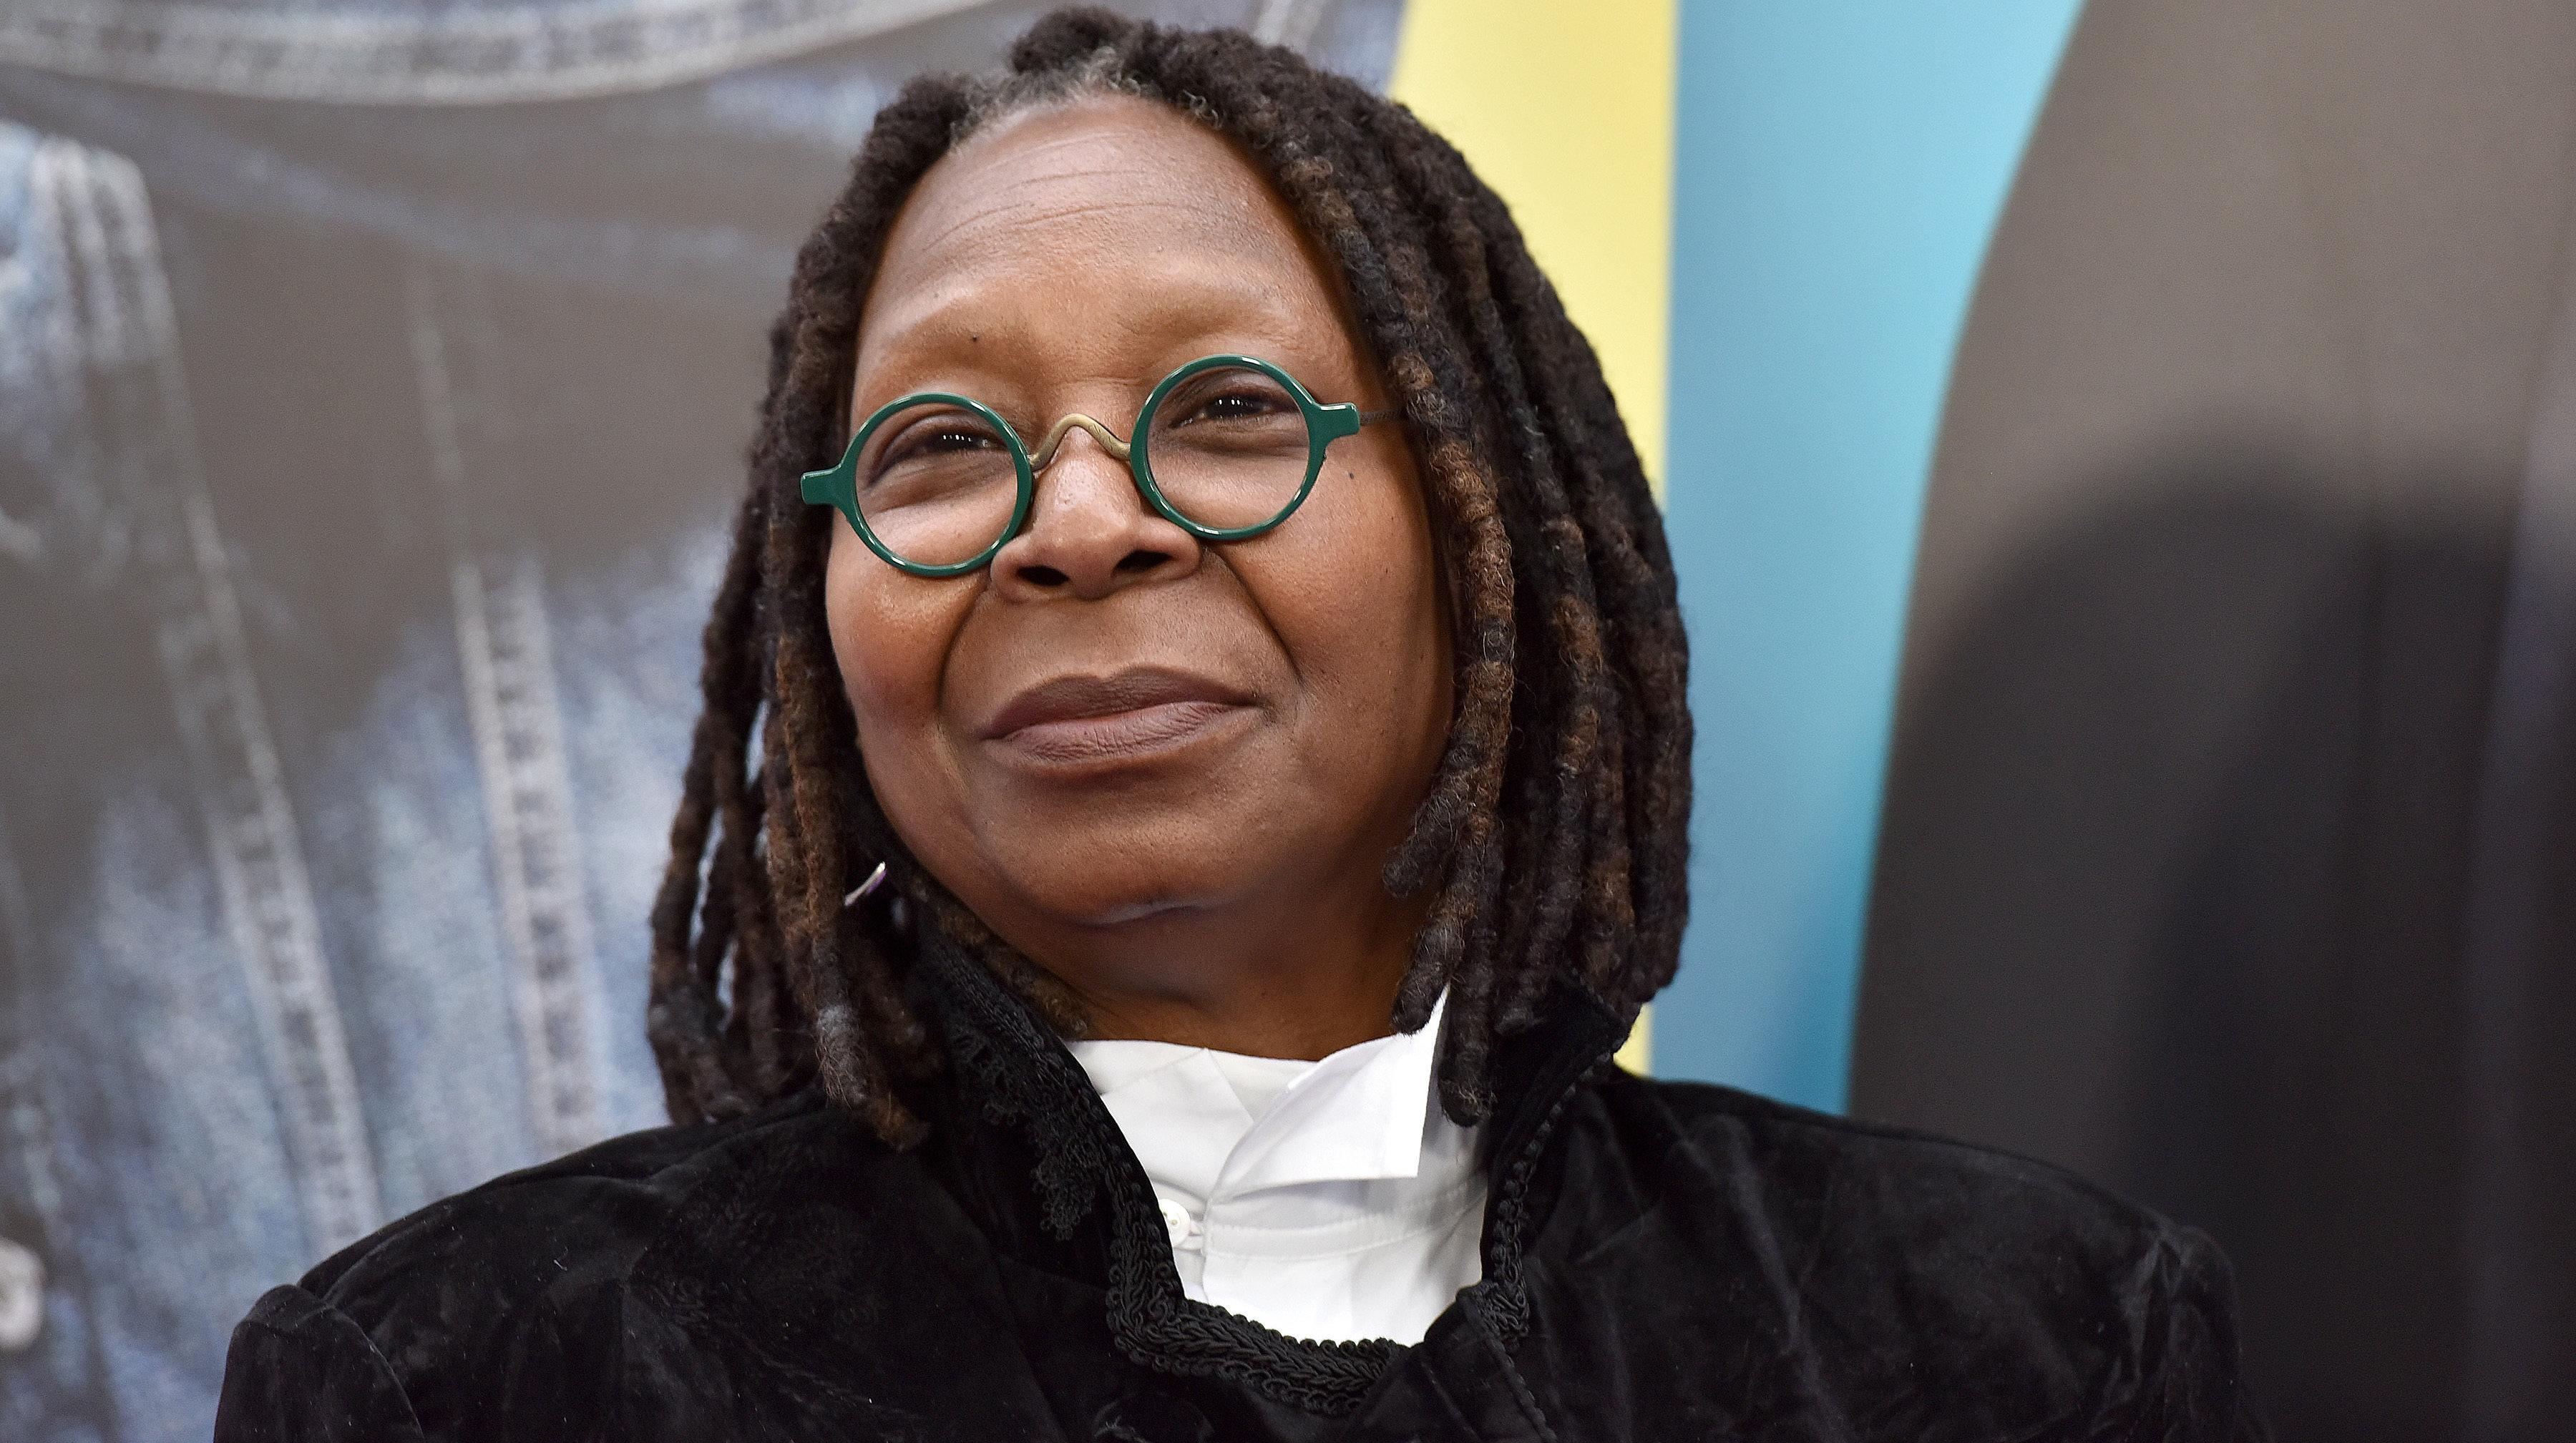 Whoopi Goldberg Defends Joe Biden, Doesn't Want Him To Change His Ways